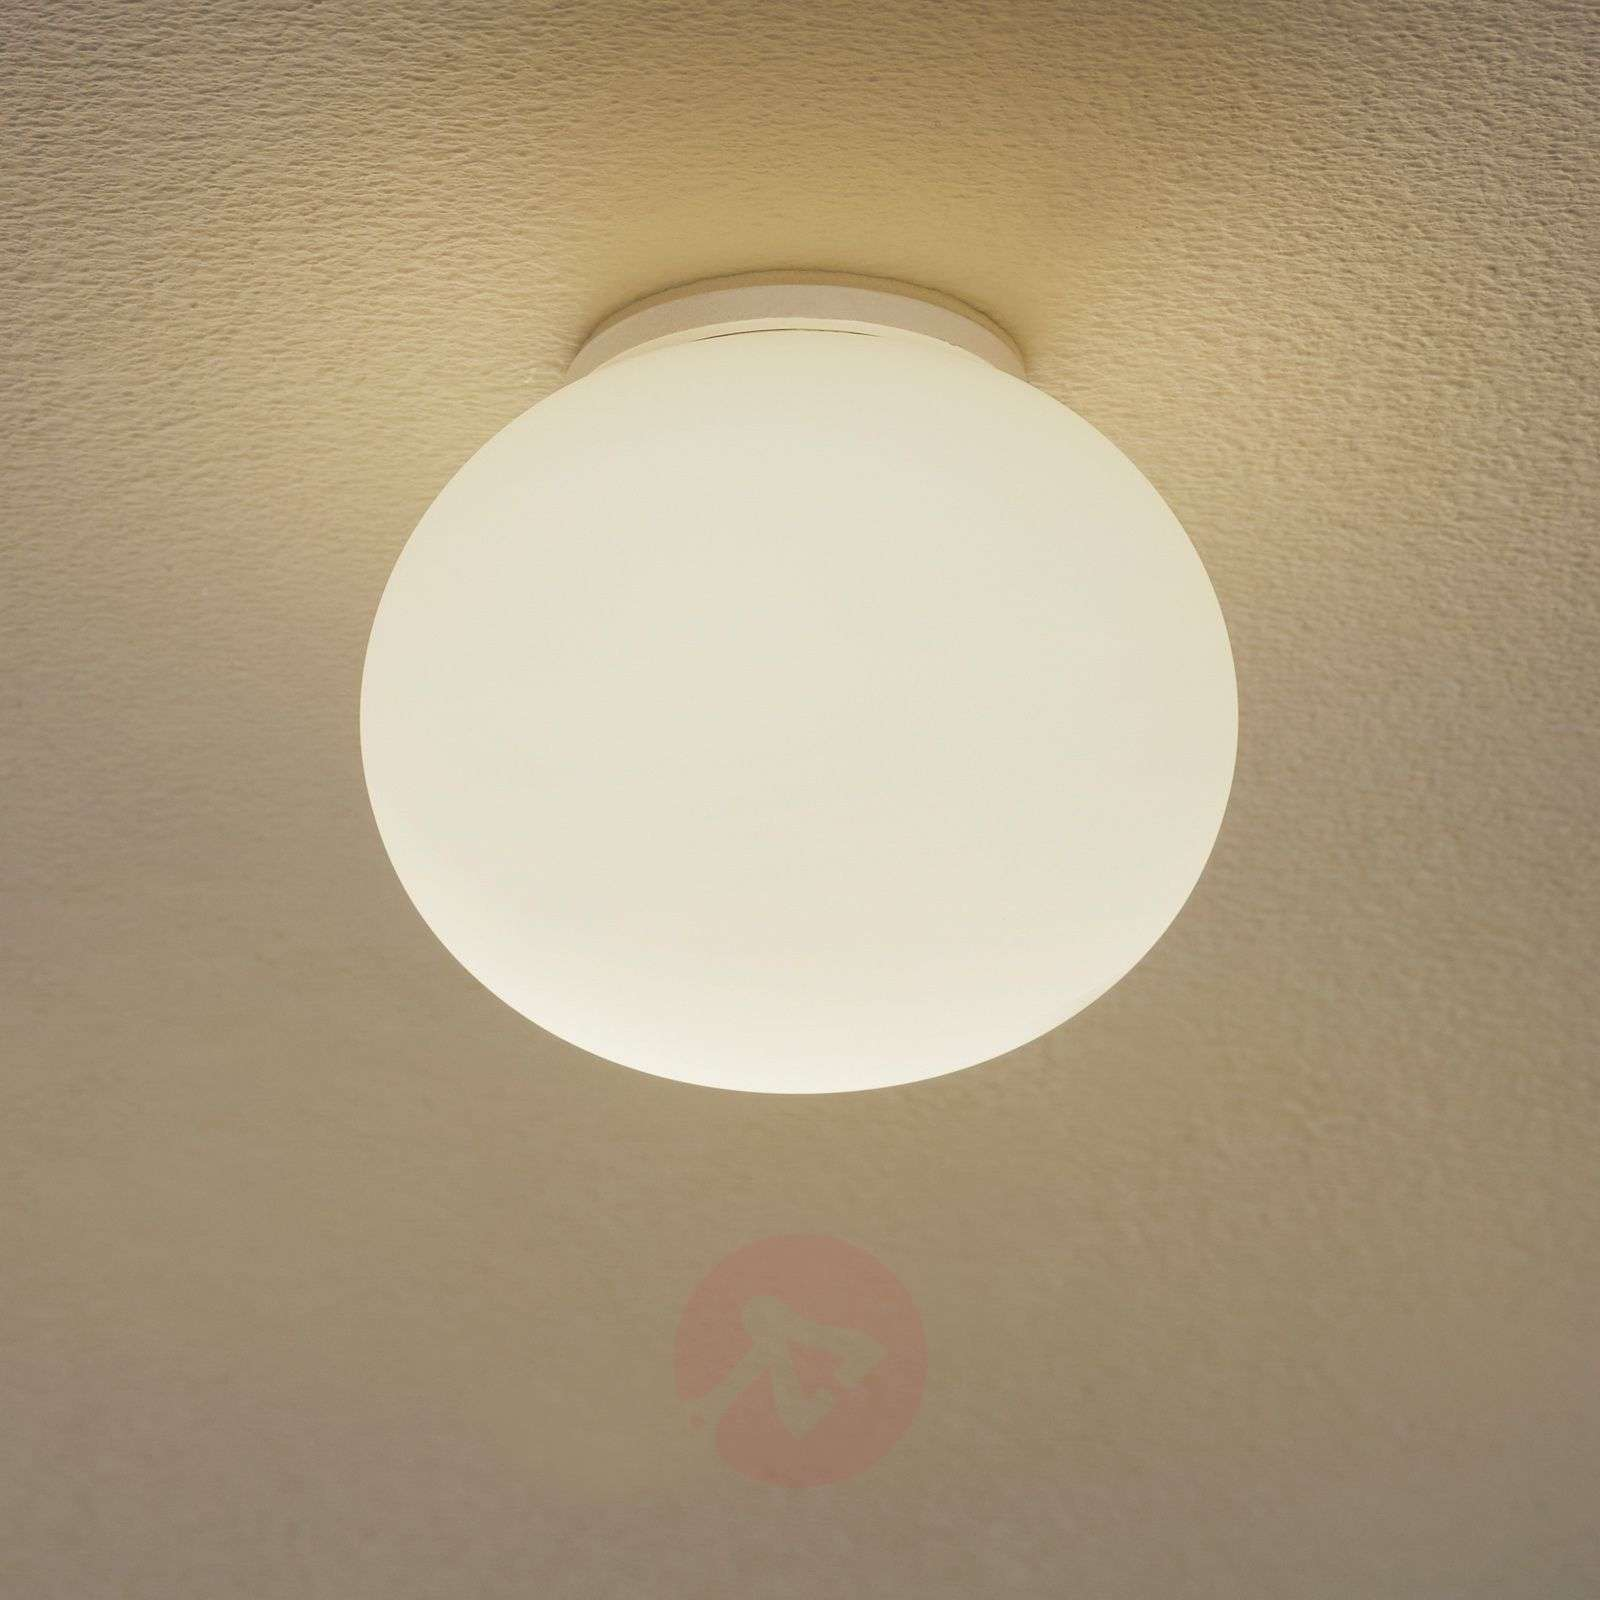 Mini Glo-Ball C-W Wall Lamp-3510290-01